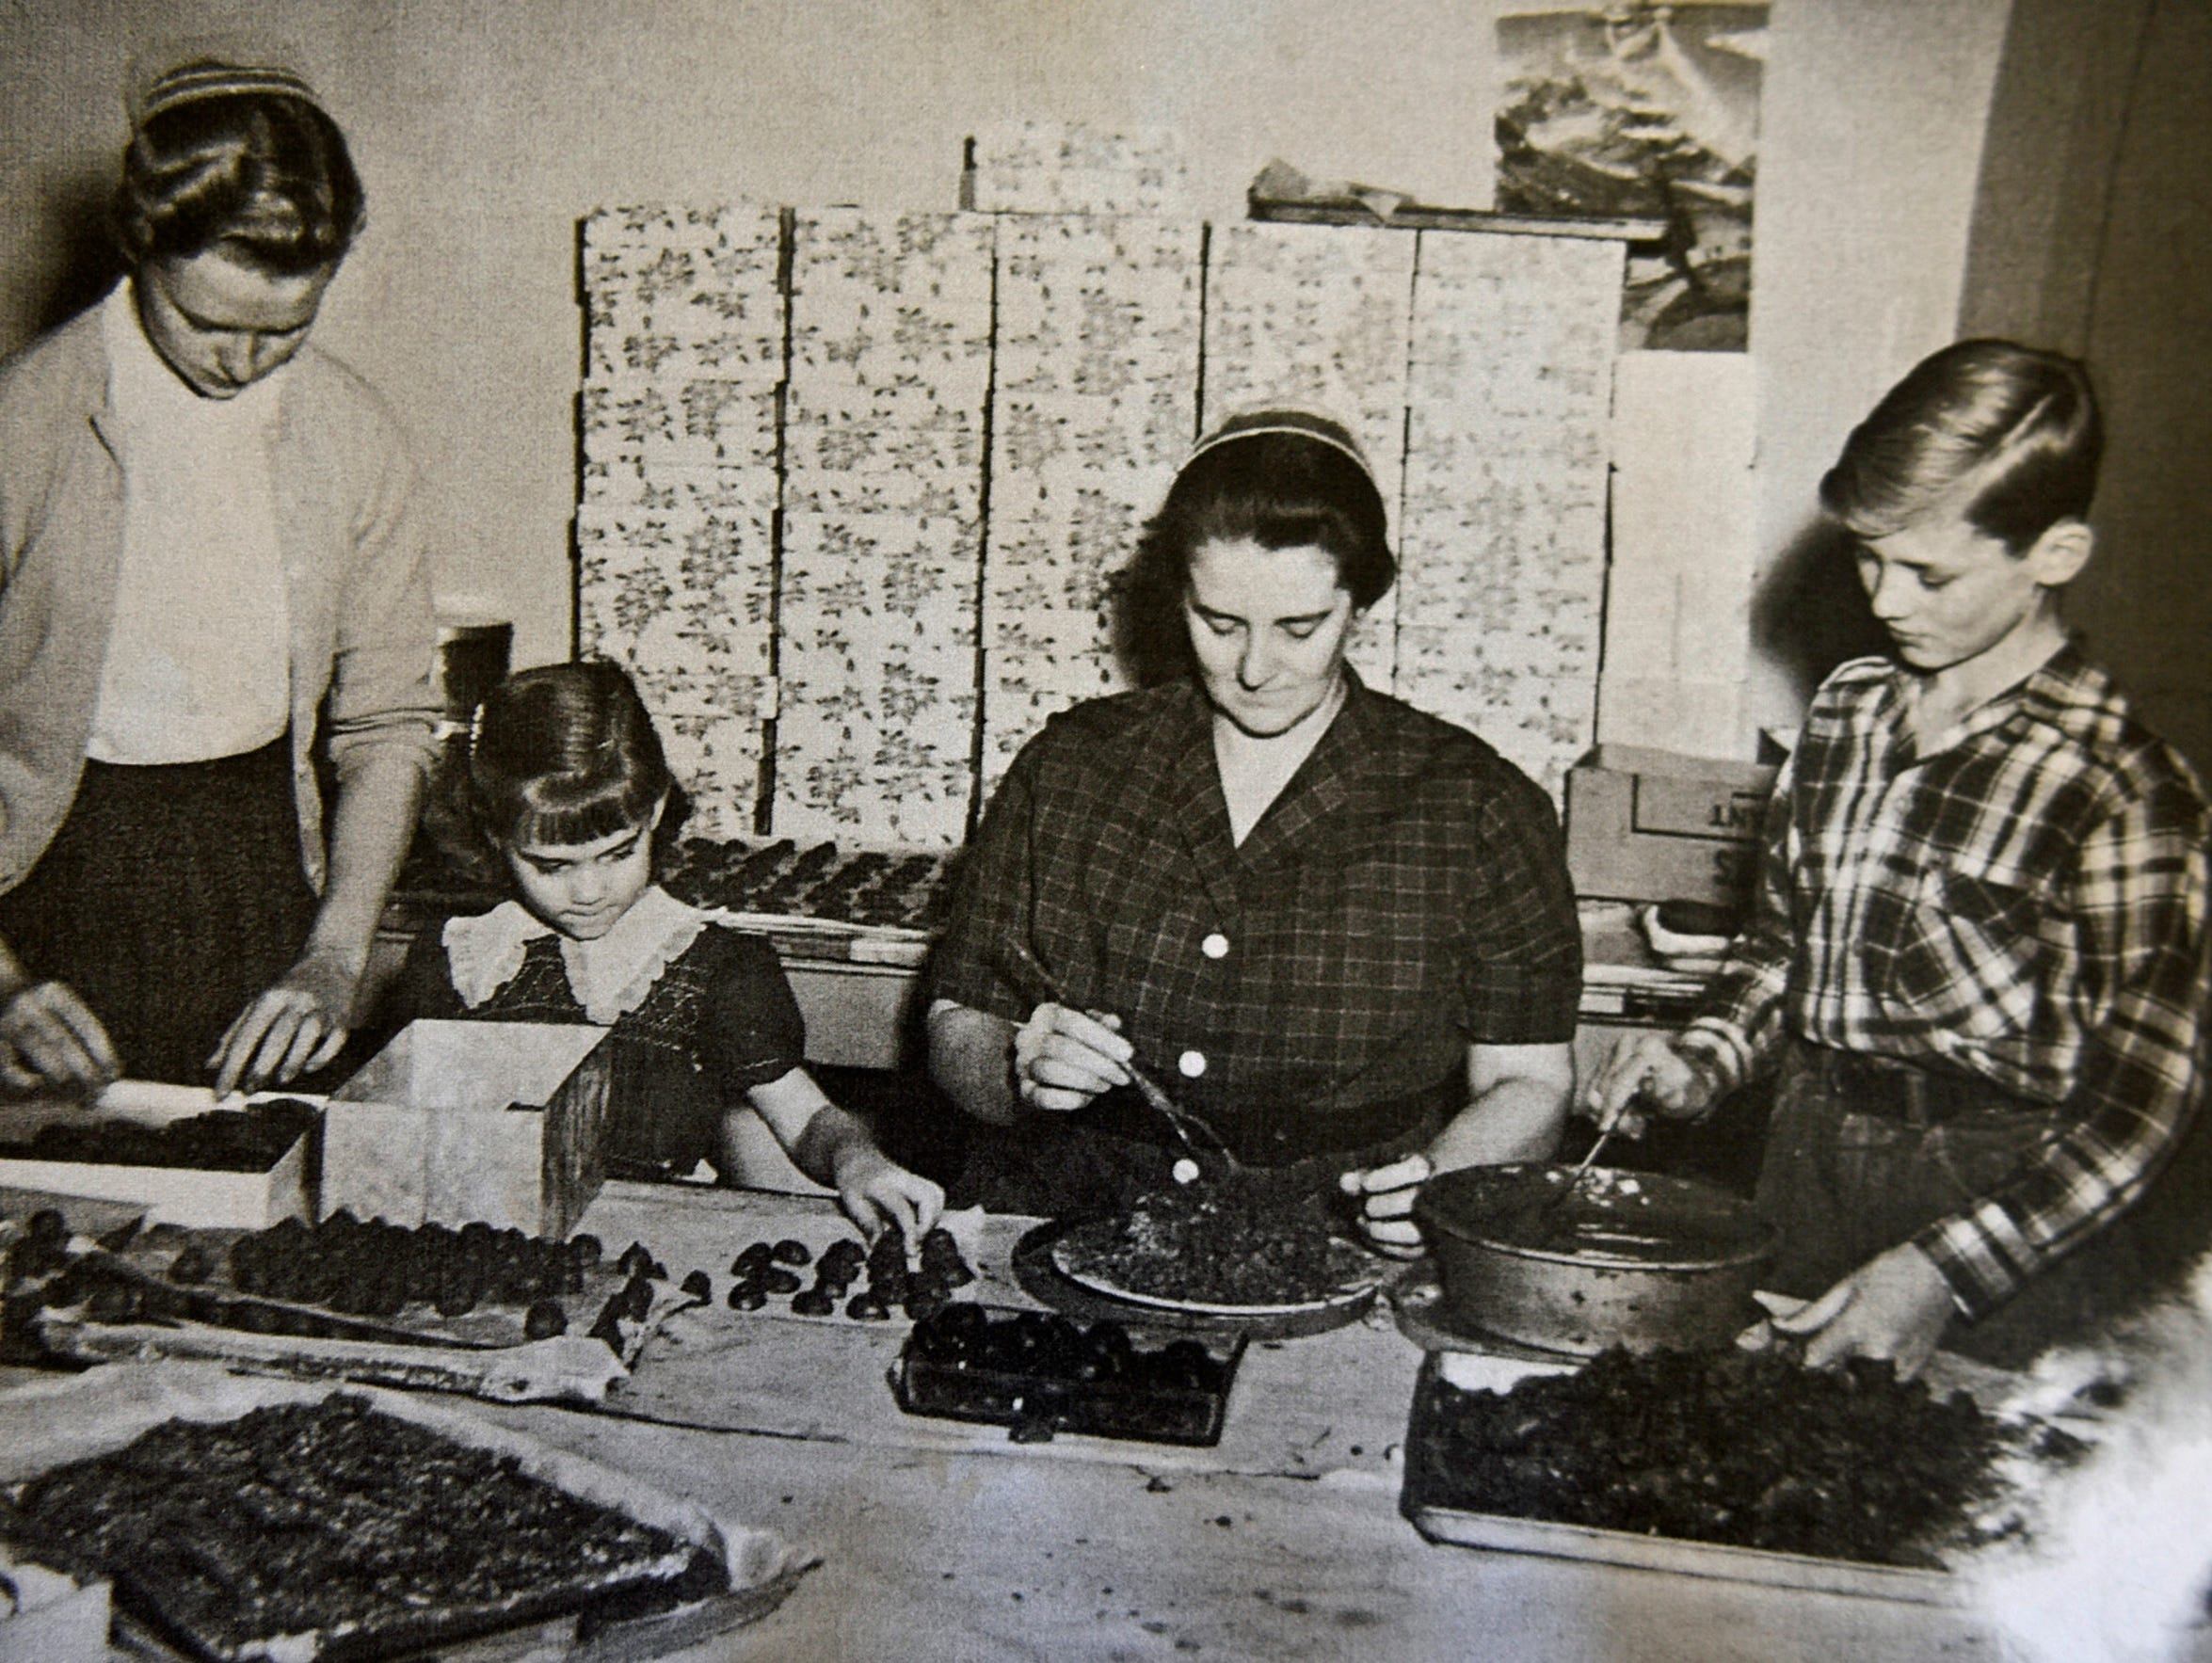 Early pictures show workers in the Gibble kitchen.